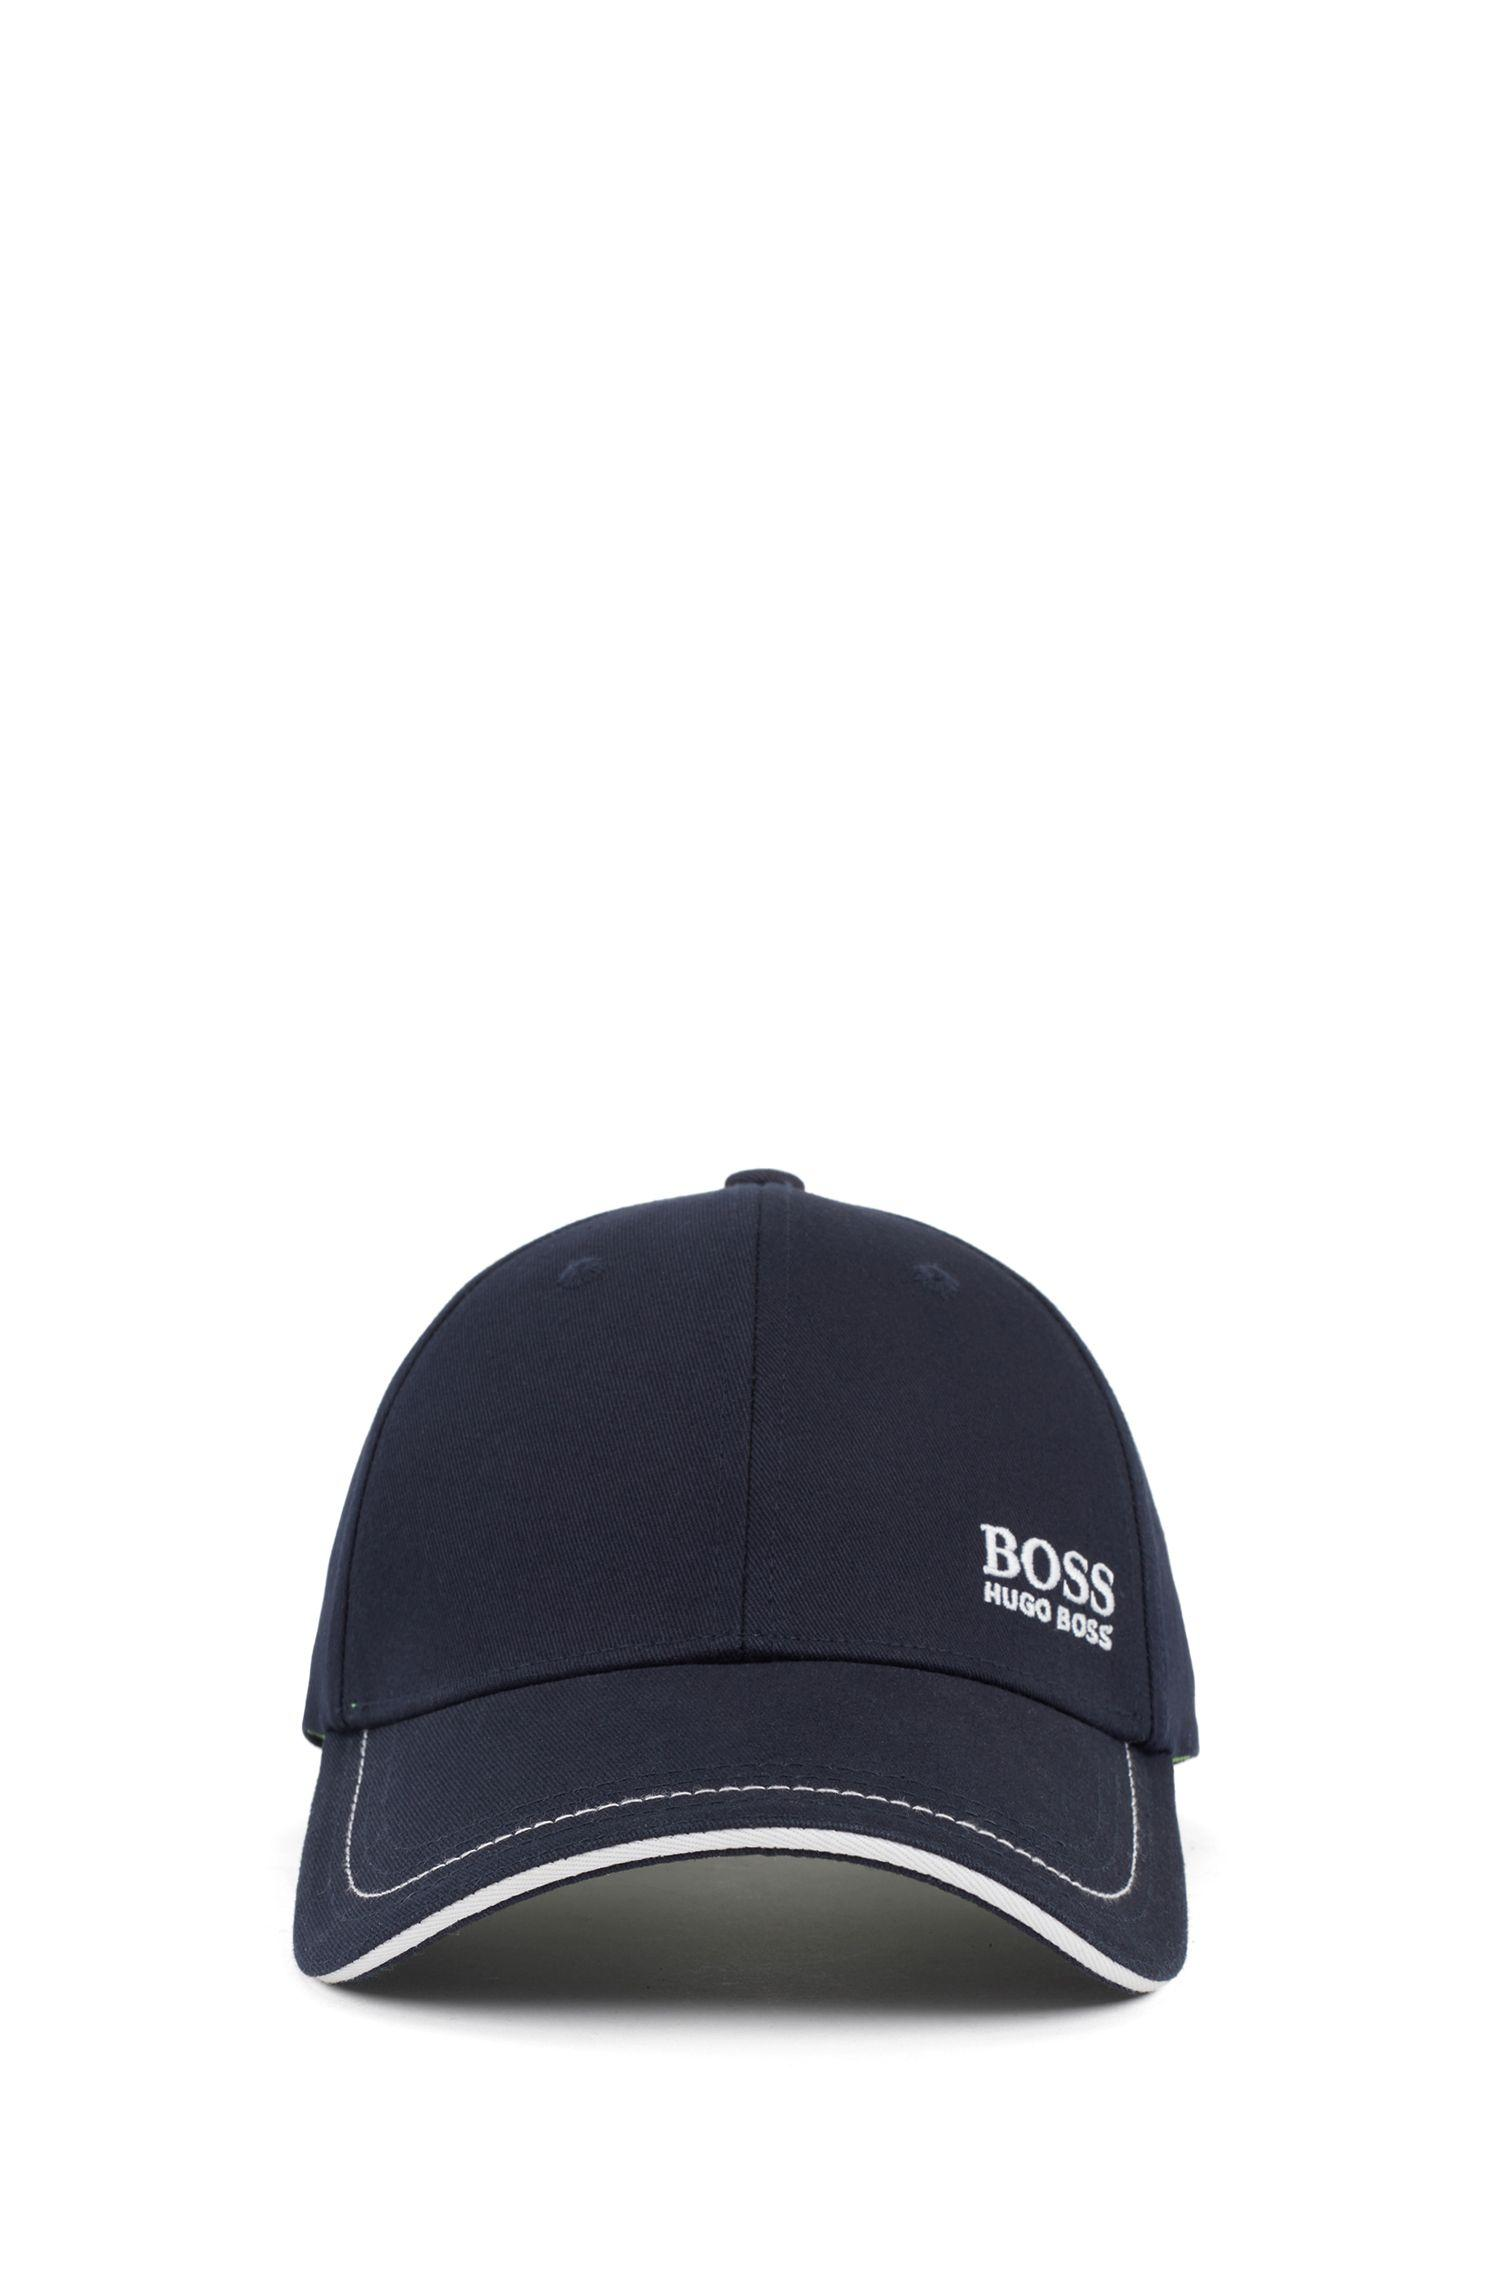 c4ec11fe8 BOSS - Blue 'cap' | Cotton Twill Hat for Men - Lyst. View fullscreen